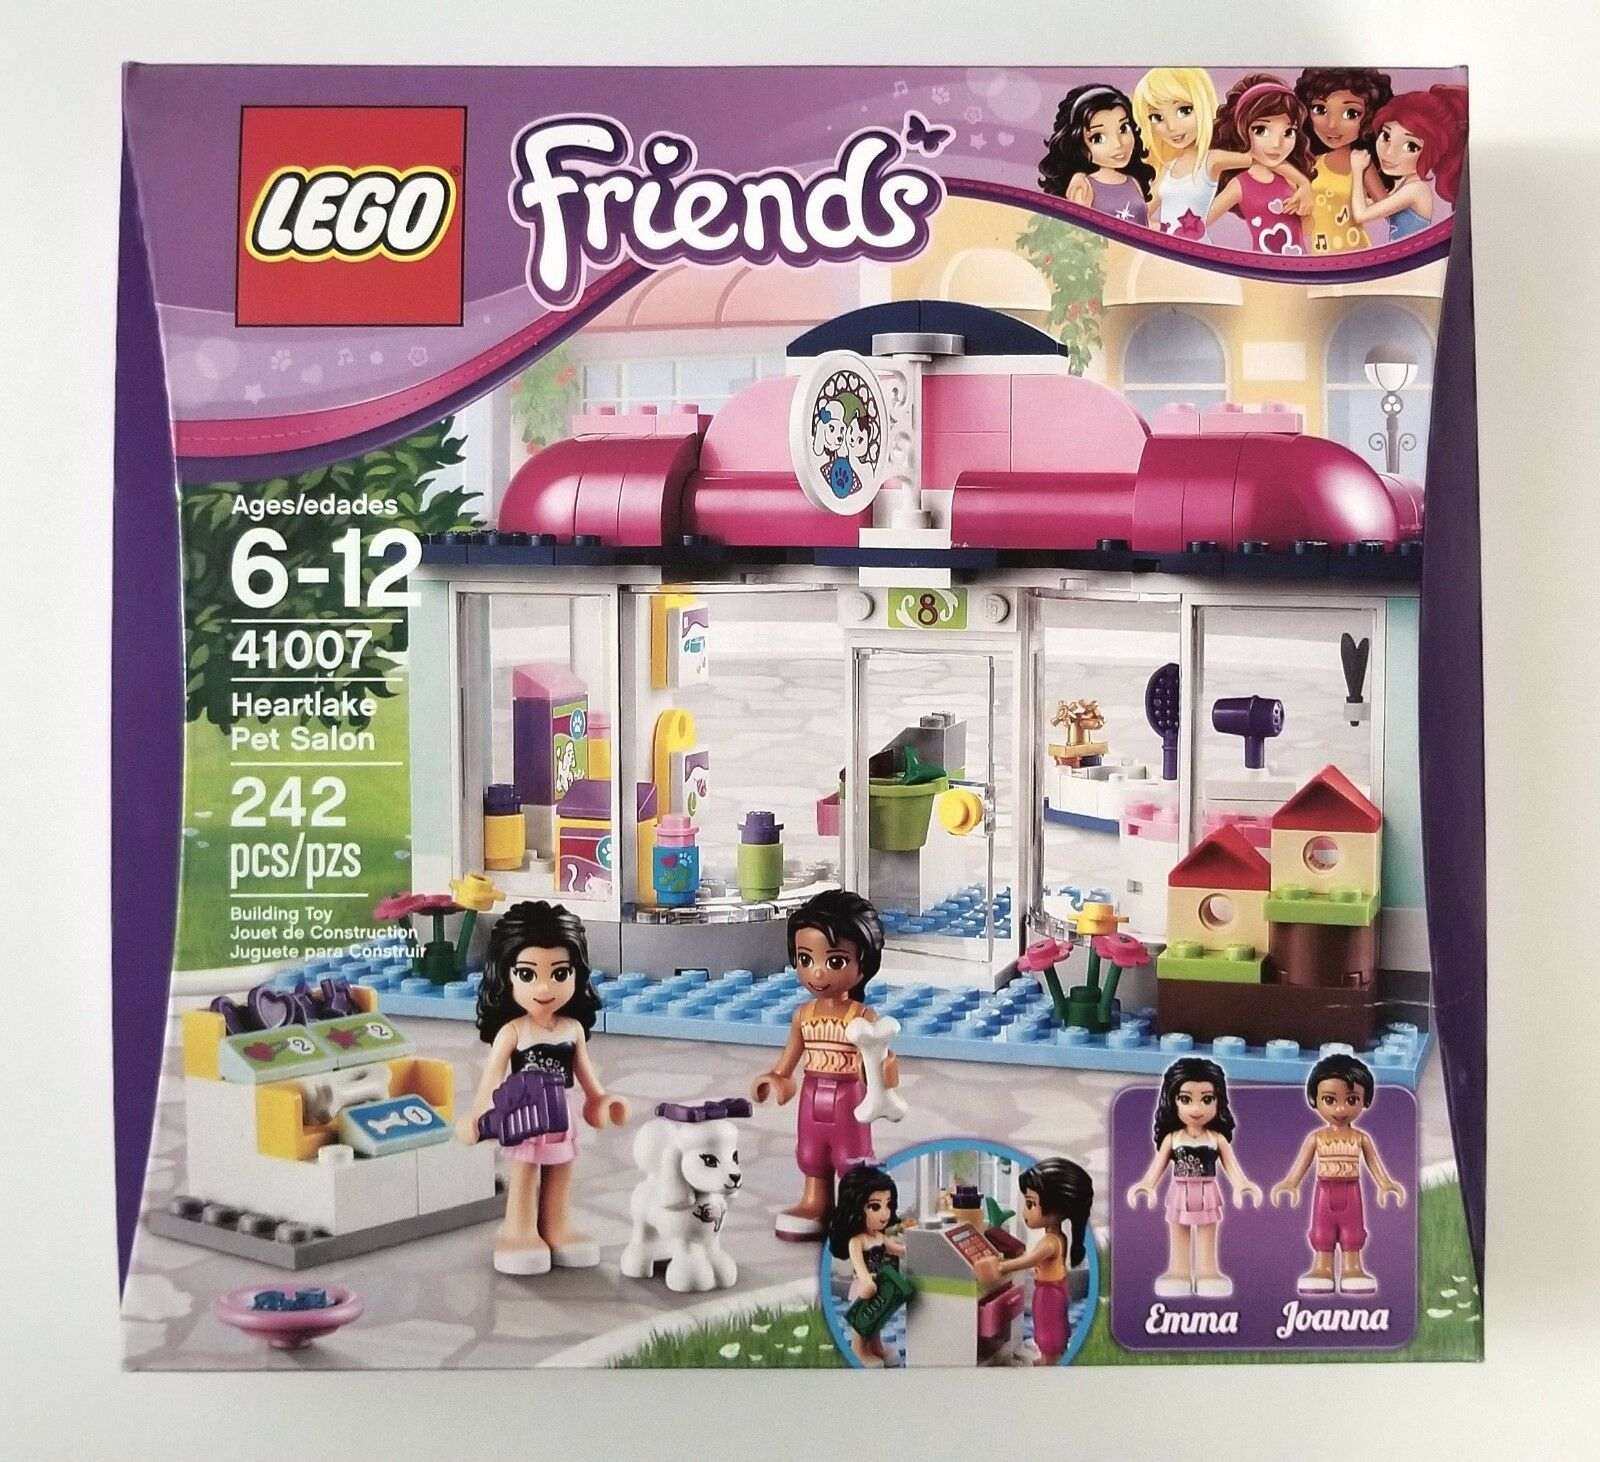 New Sealed 2013 LEGO Friends Heartlake Pet Salon Emma Joanna 41007 RetiROT